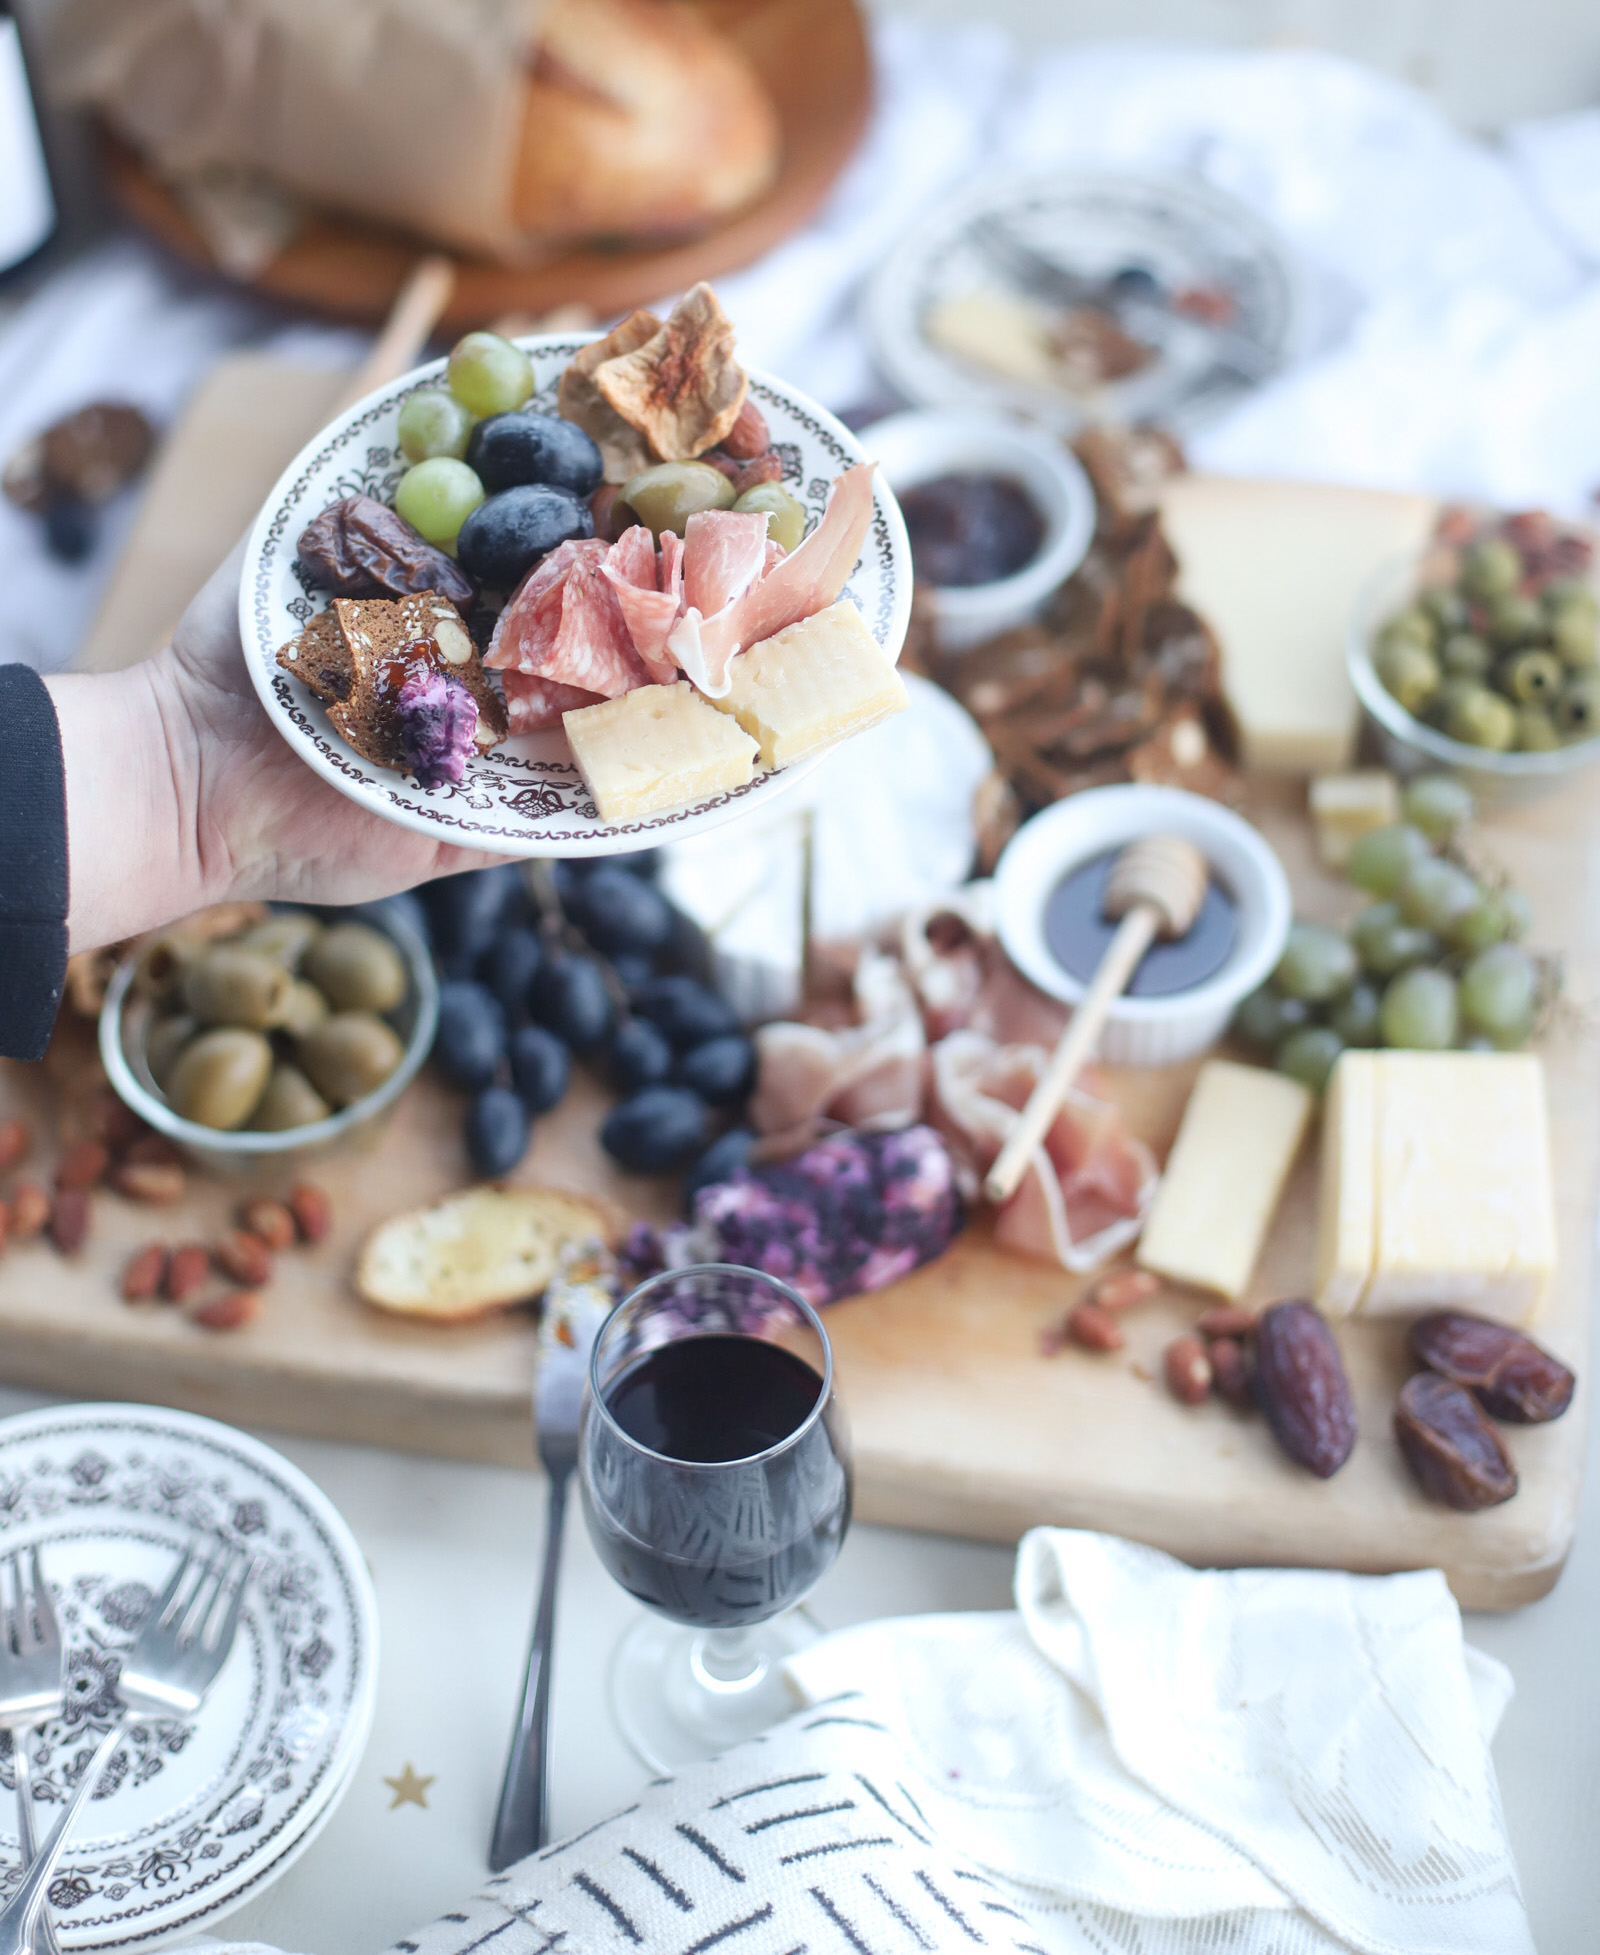 person holding a plate with food from a Charcuterie